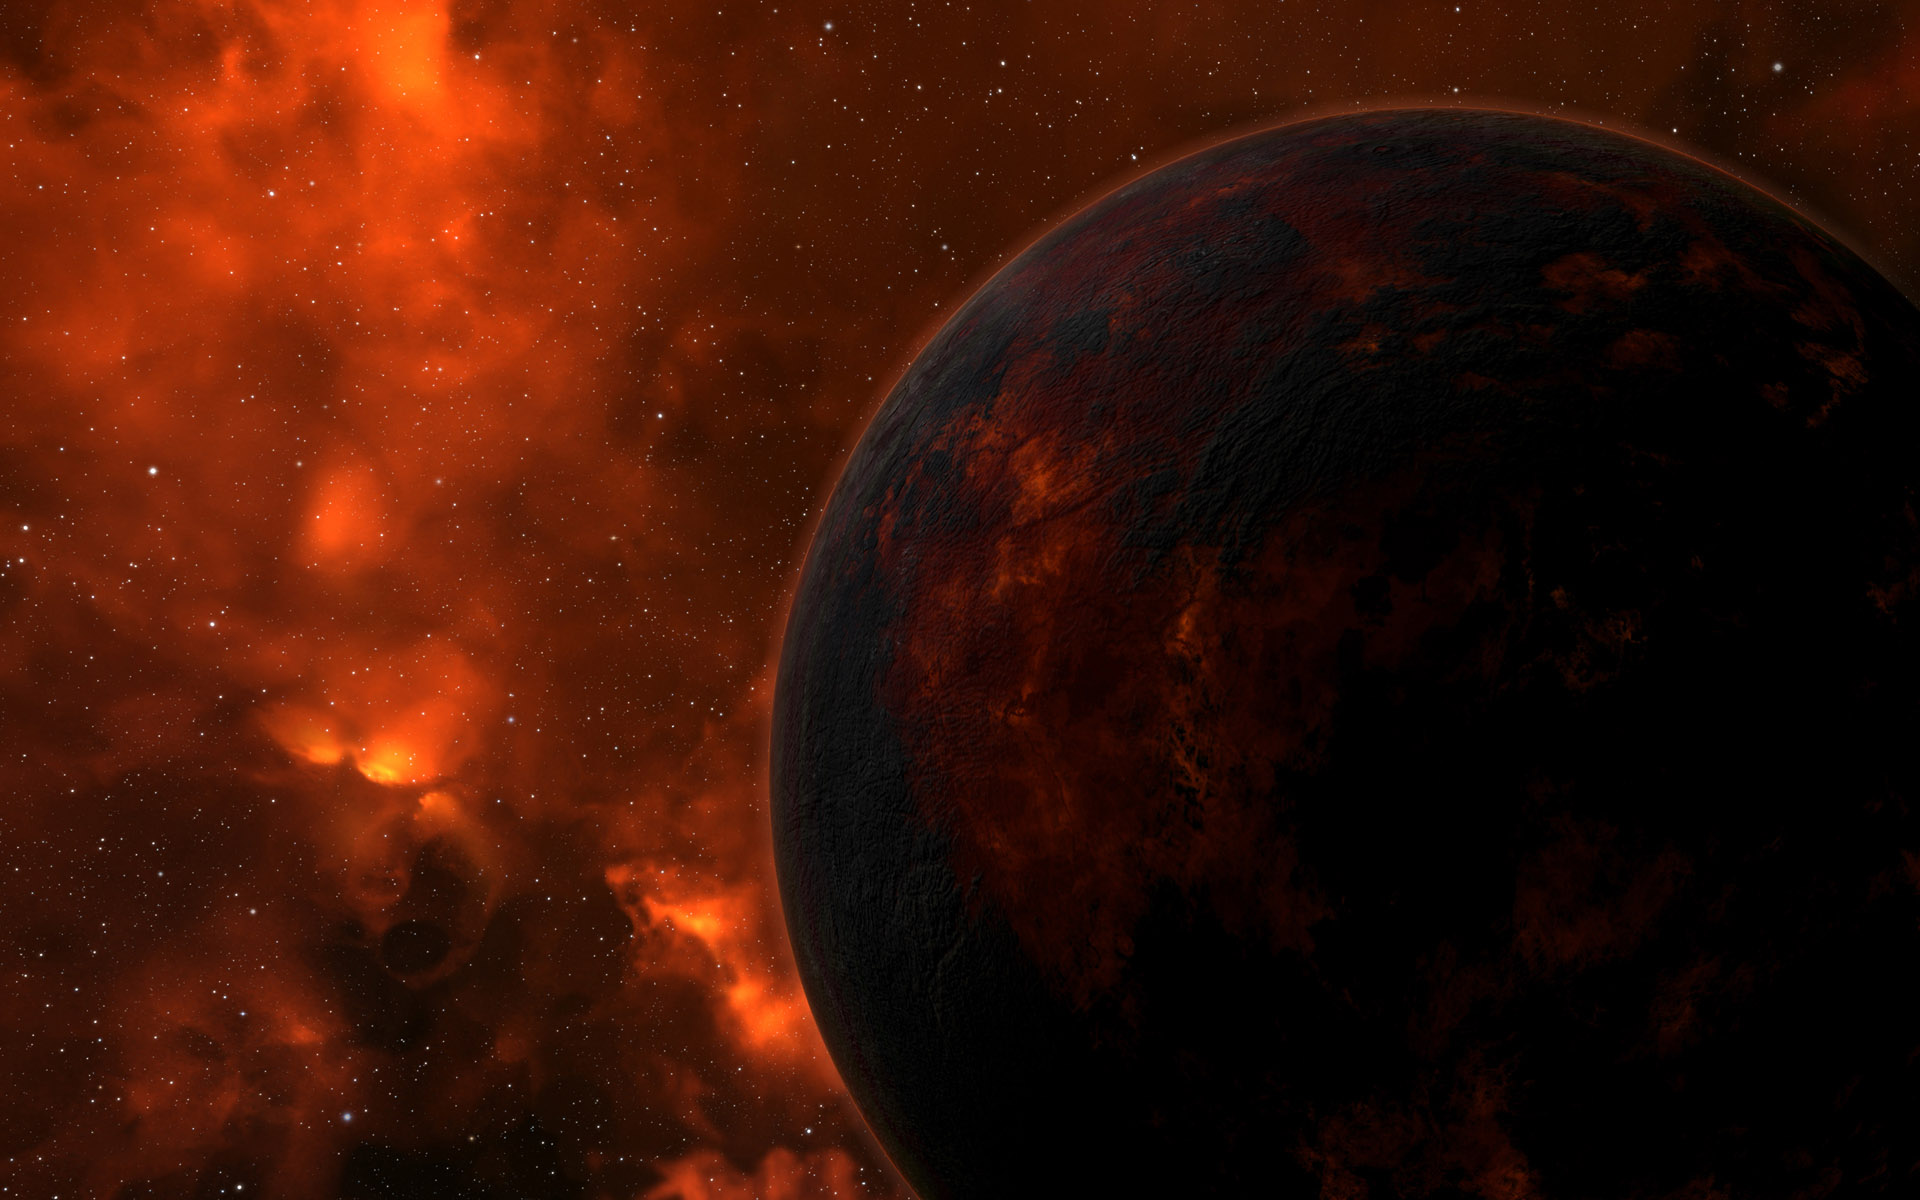 Eve Online Iphone Wallpaper: Eve Online Planets HD Wallpaper